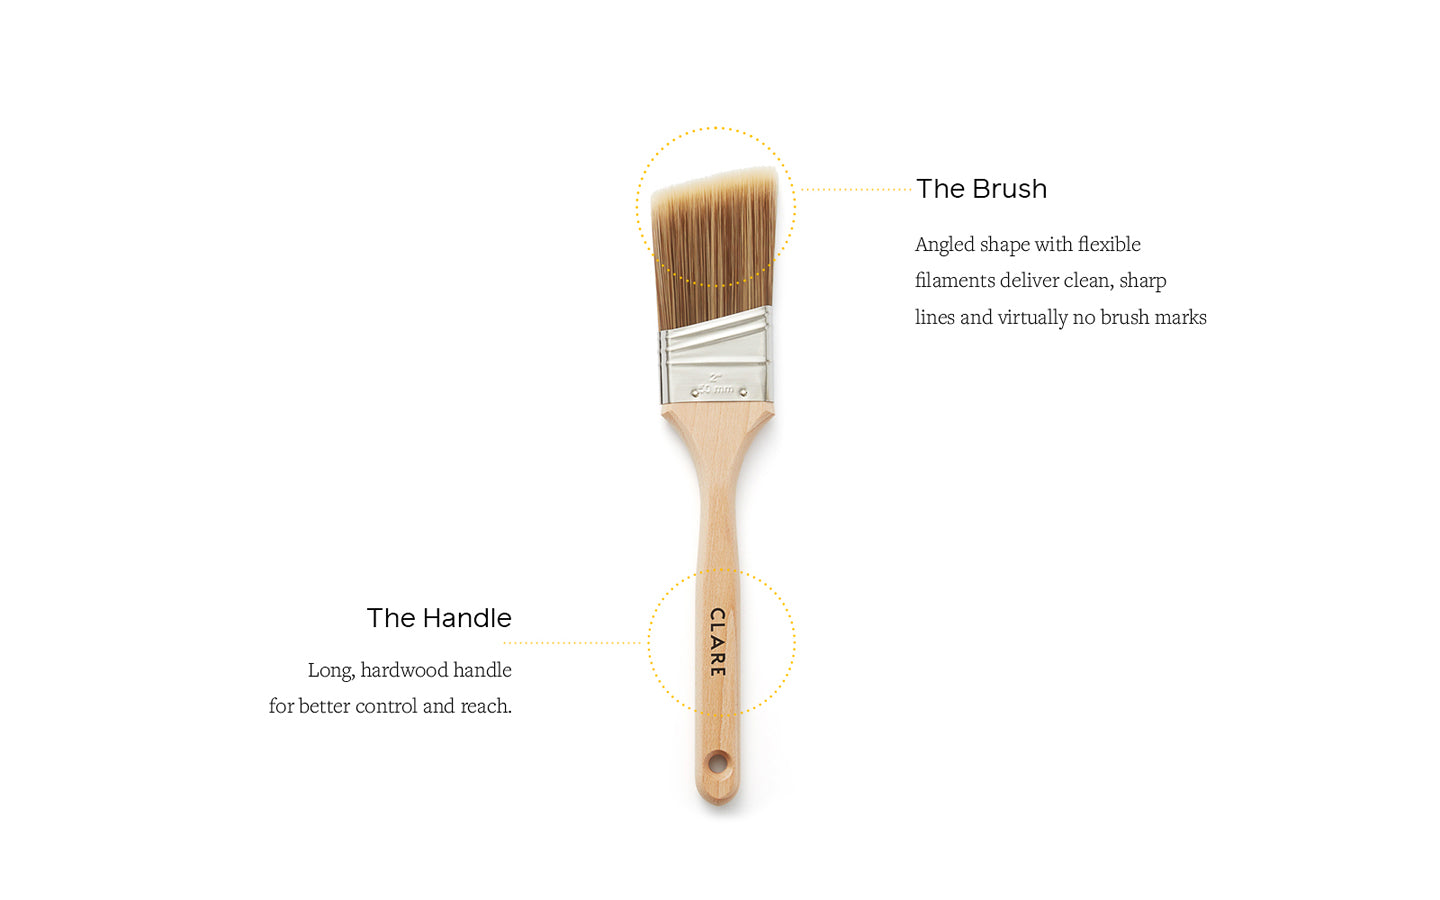 A full list of essential paint supplies you need to paint a room like a pro, this paint brush will help you achieve flawless results.